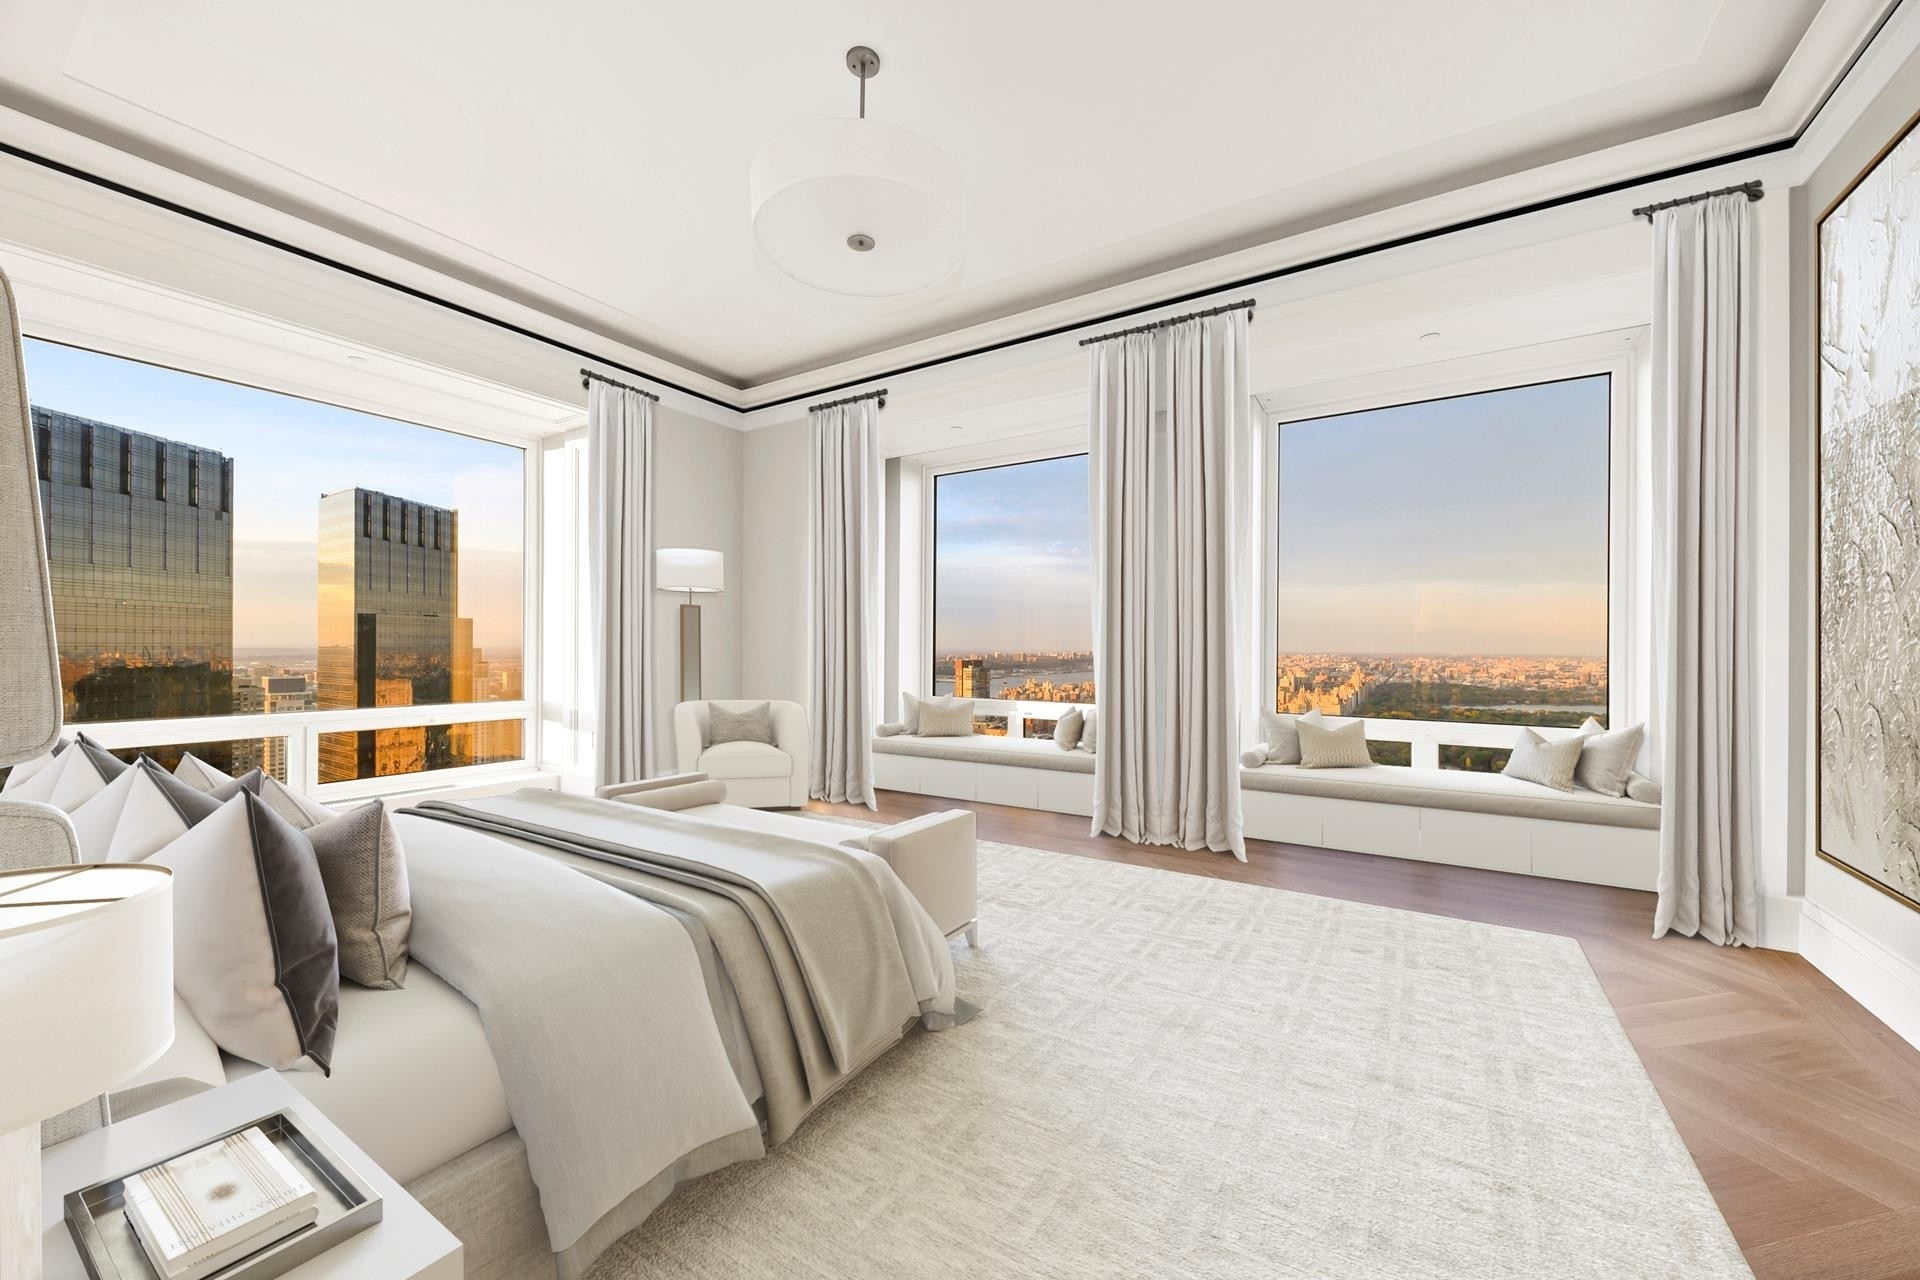 9. Condominiums for Sale at 220 CPS, 220 CENTRAL PARK S, 54/55A Central Park South, New York, NY 10019